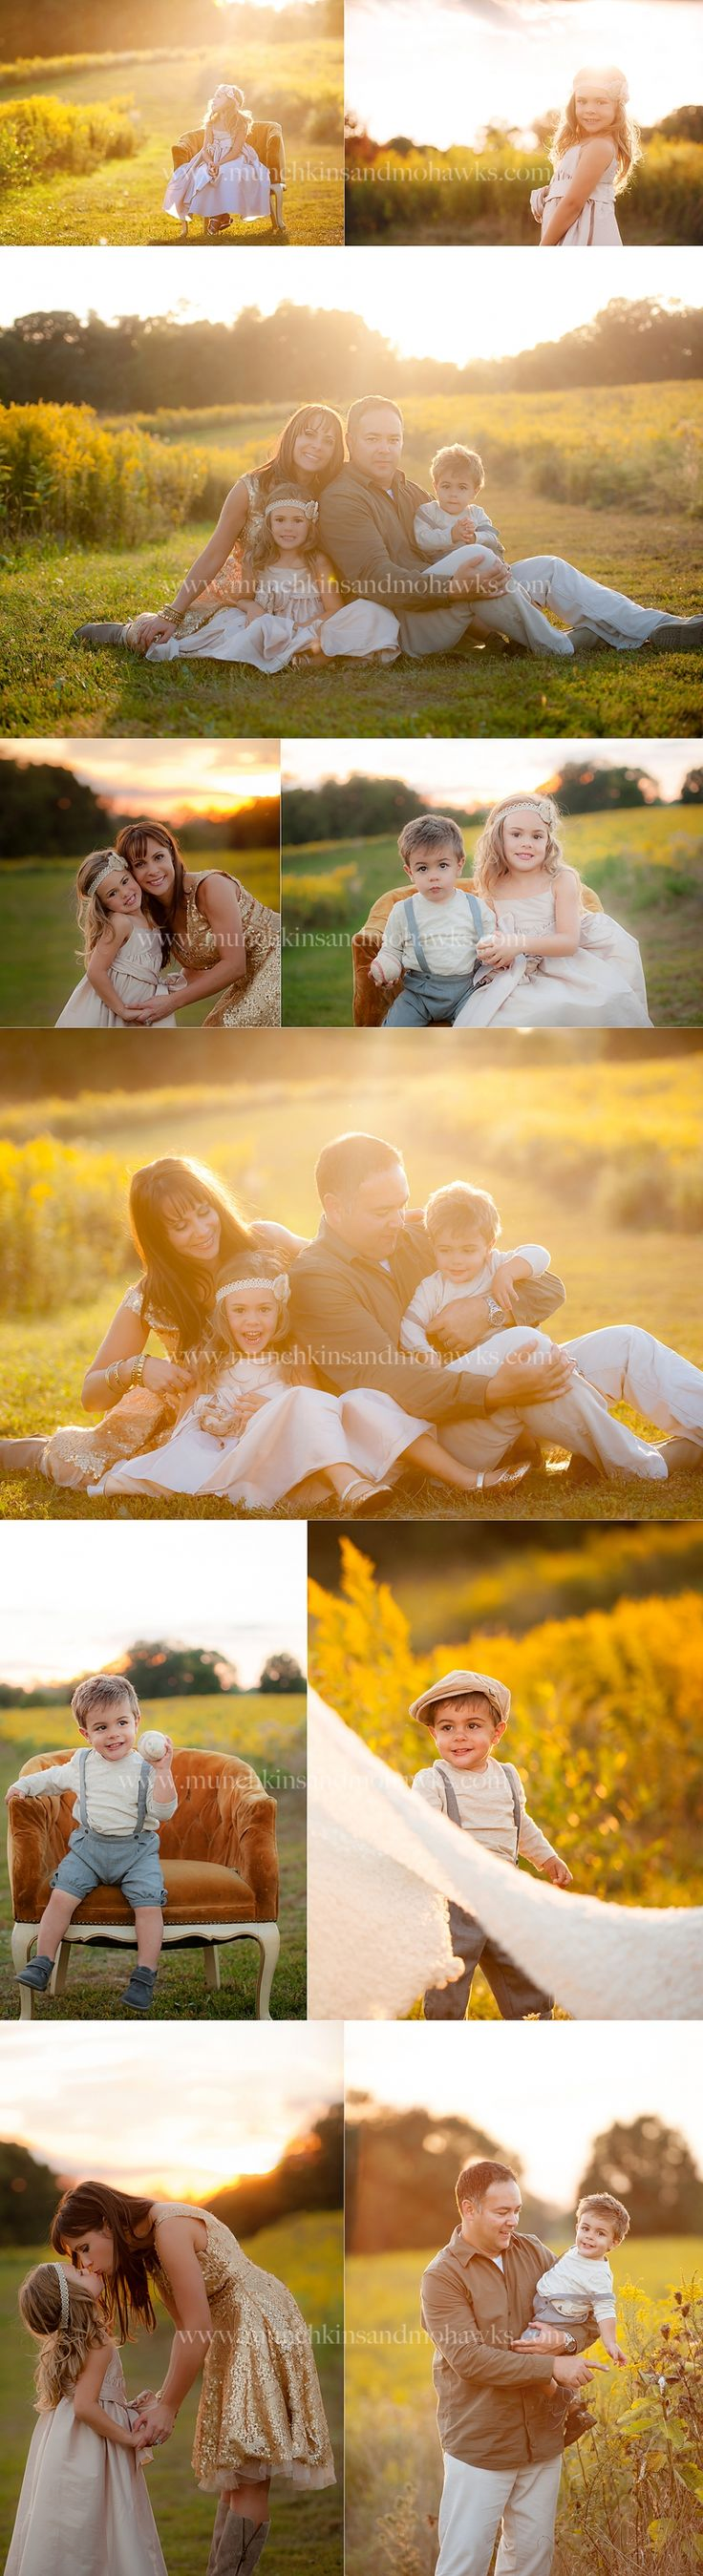 Munchkins and Mohawks Photography | Portraits by Tiffany Amber » Portraits by Tiffany Amber » page 10